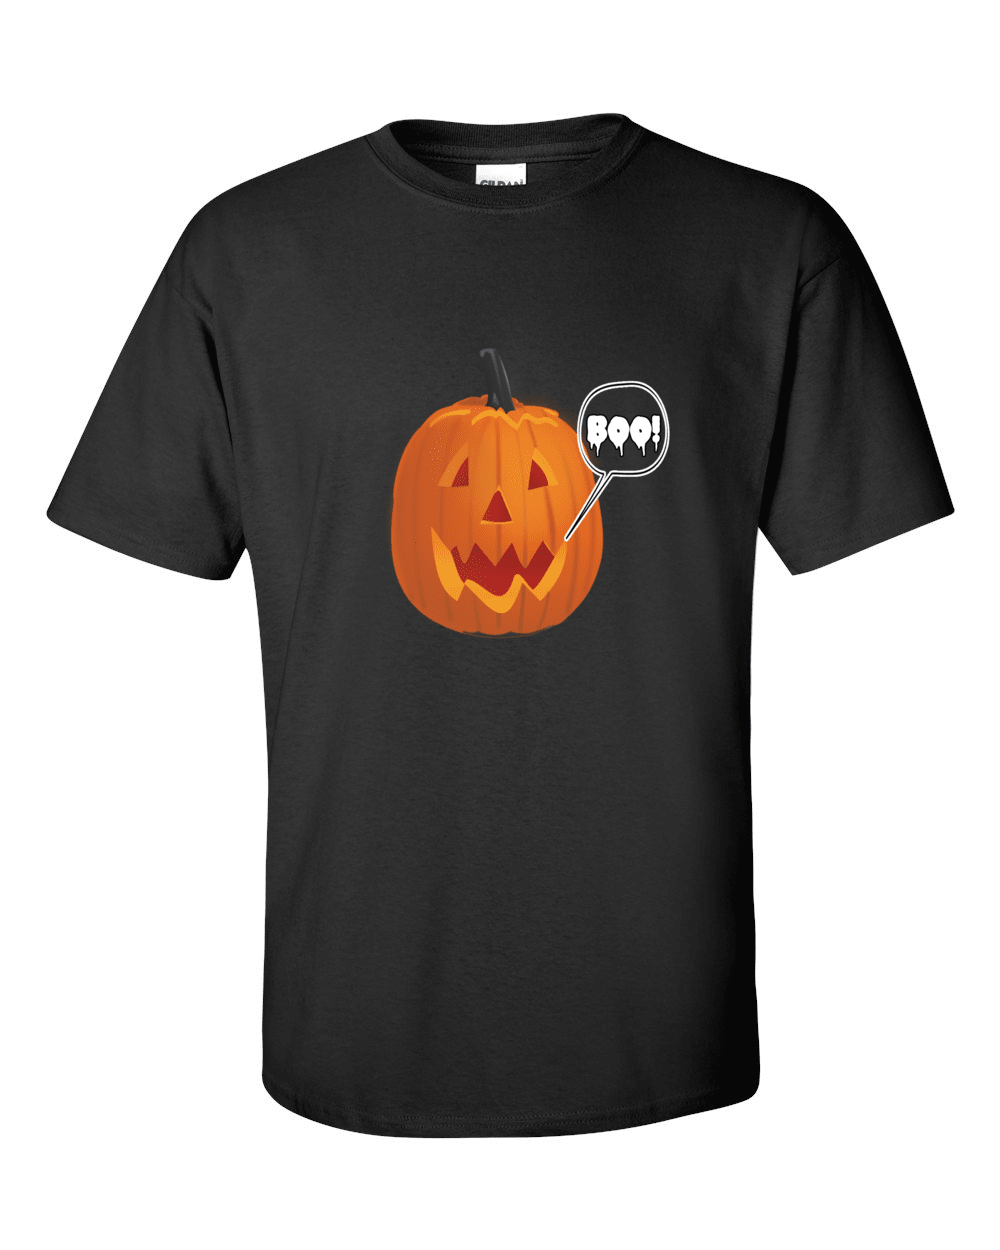 Halloween Costume T-Shirt - Bring Me Tacos